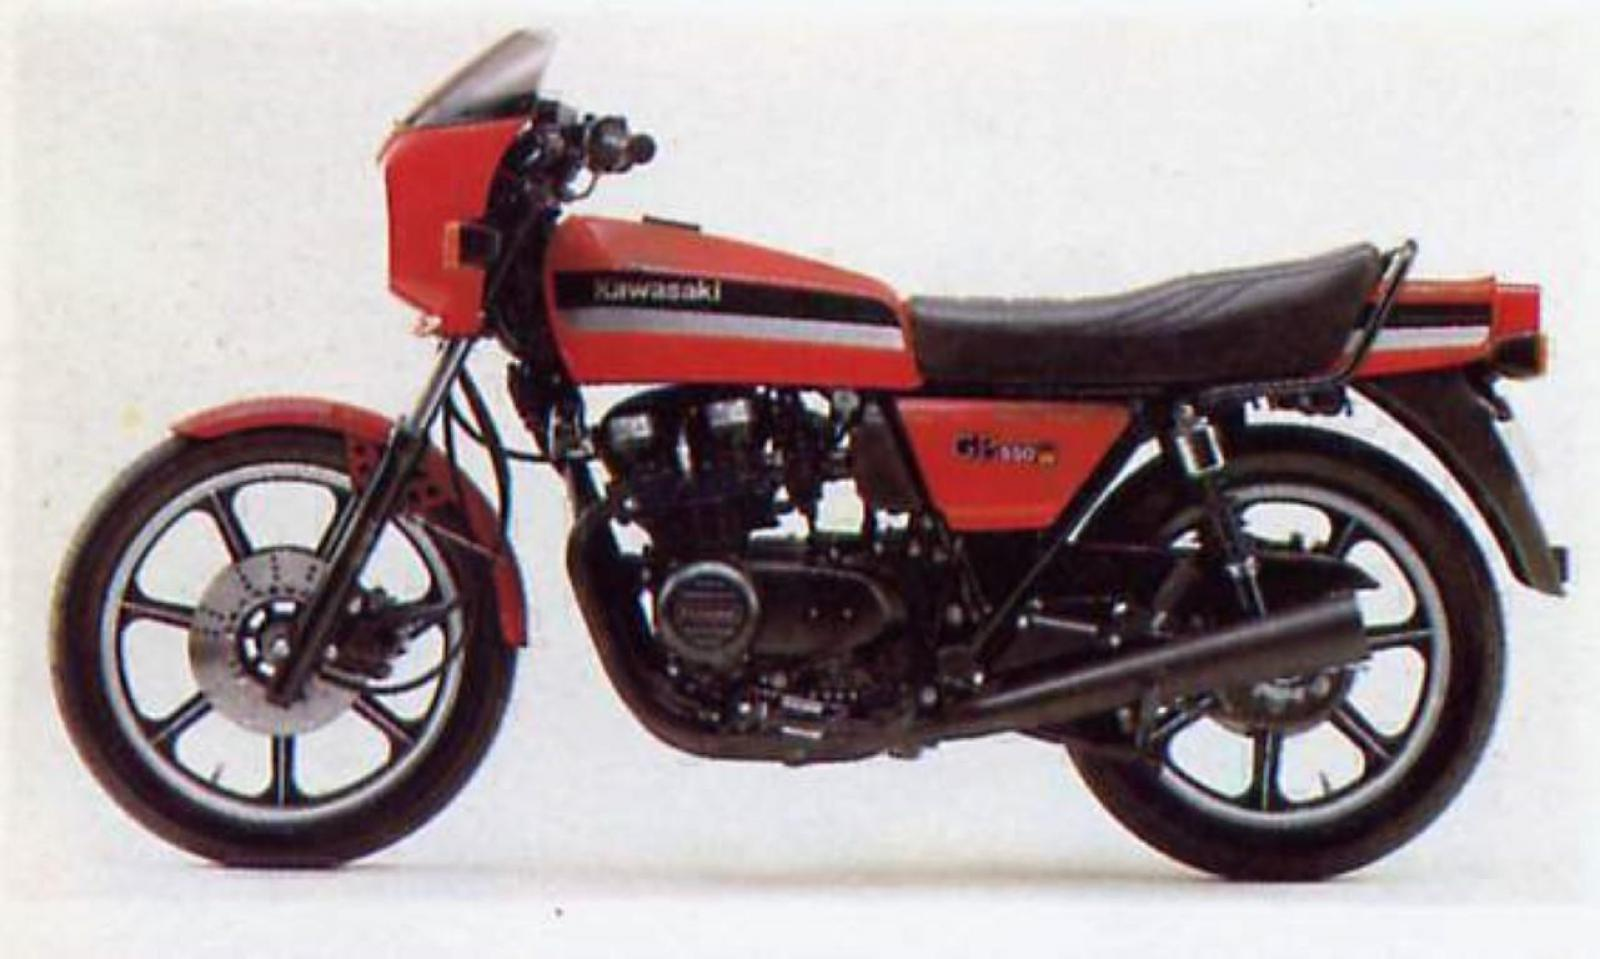 Kawasaki GPZ 550: pics, specs and list of seriess by year ...